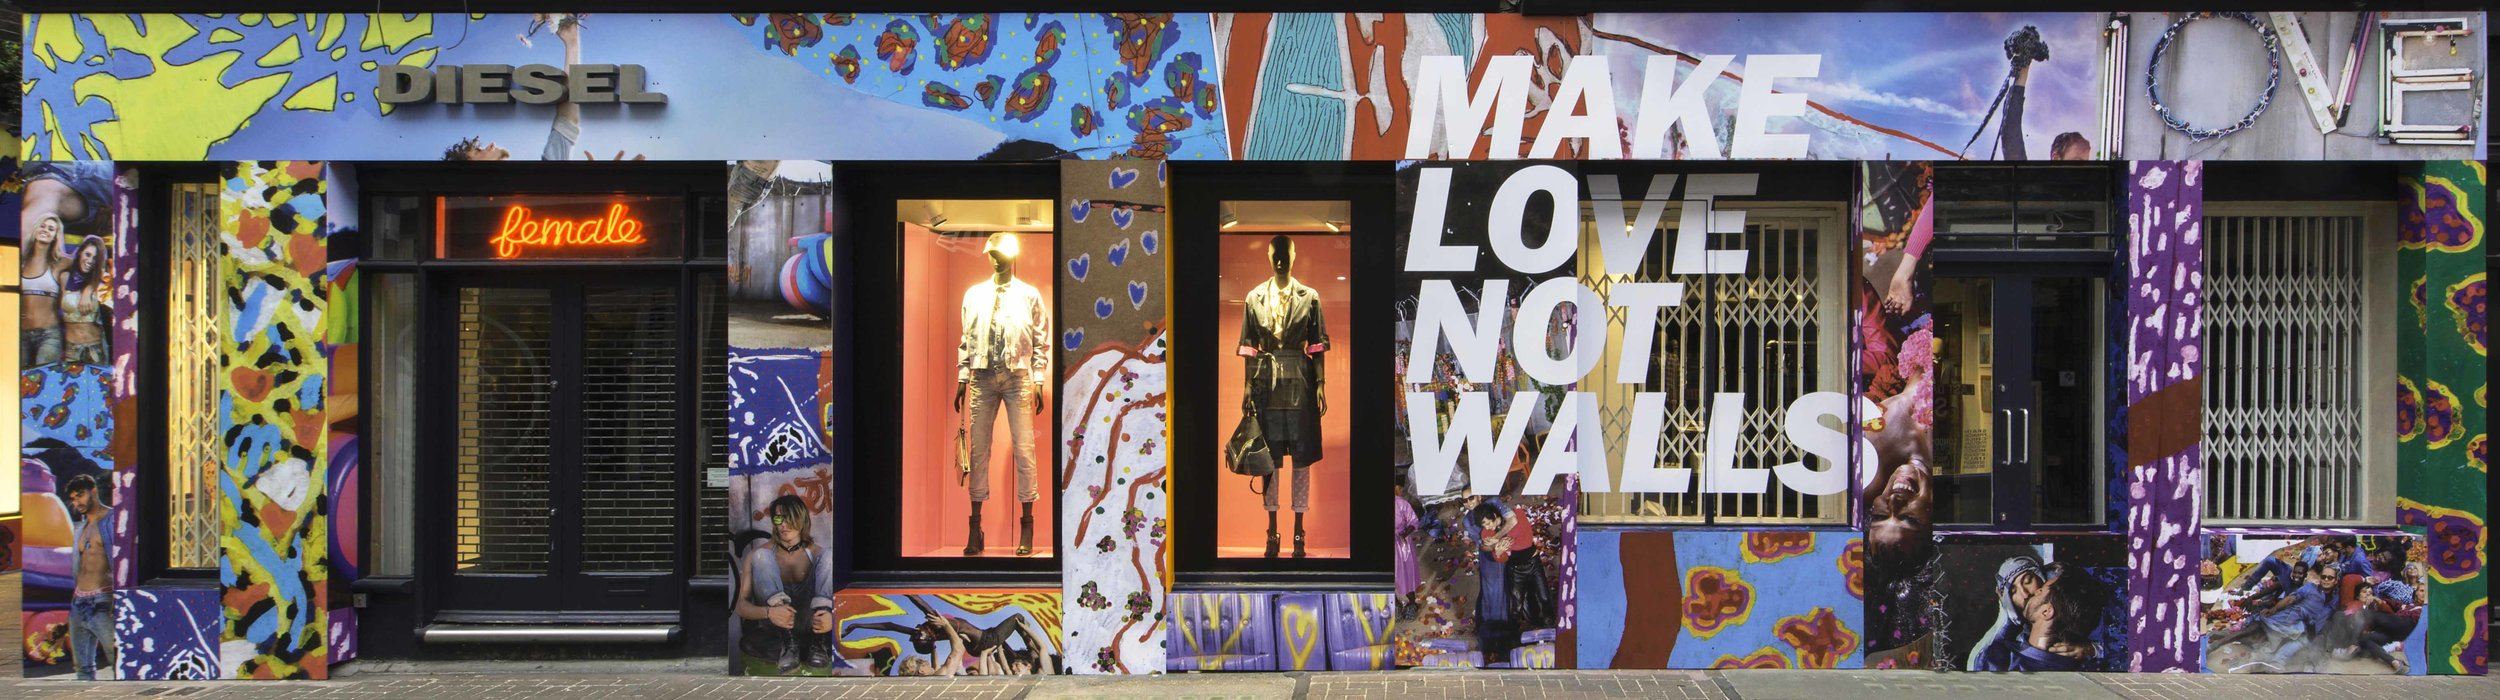 Diesel-Carnaby-Street-MAKE-LOVE-NOT-WALLS-Campaign-Female-Store-2017.jpg